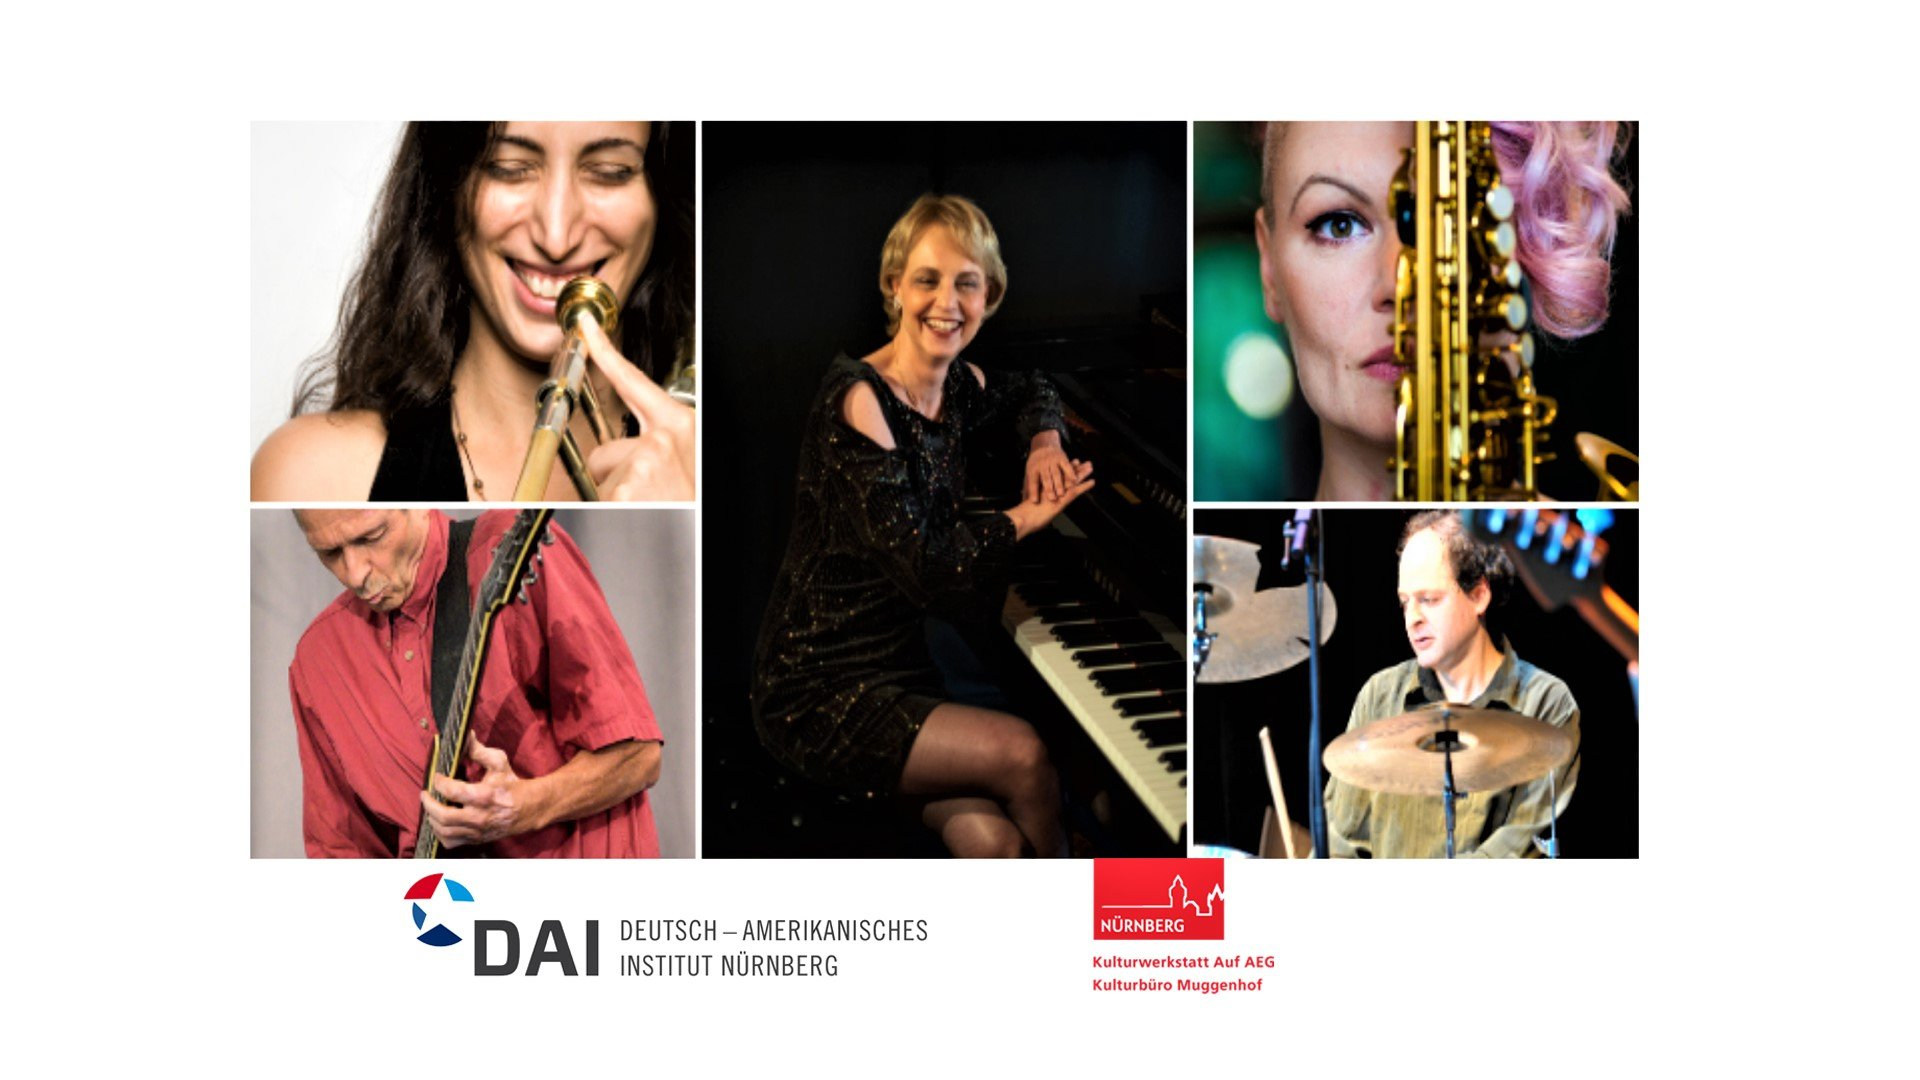 Jazz concert FEAT. Monika Herzig, Reut Regev, Jasna Jovicevic & Friends